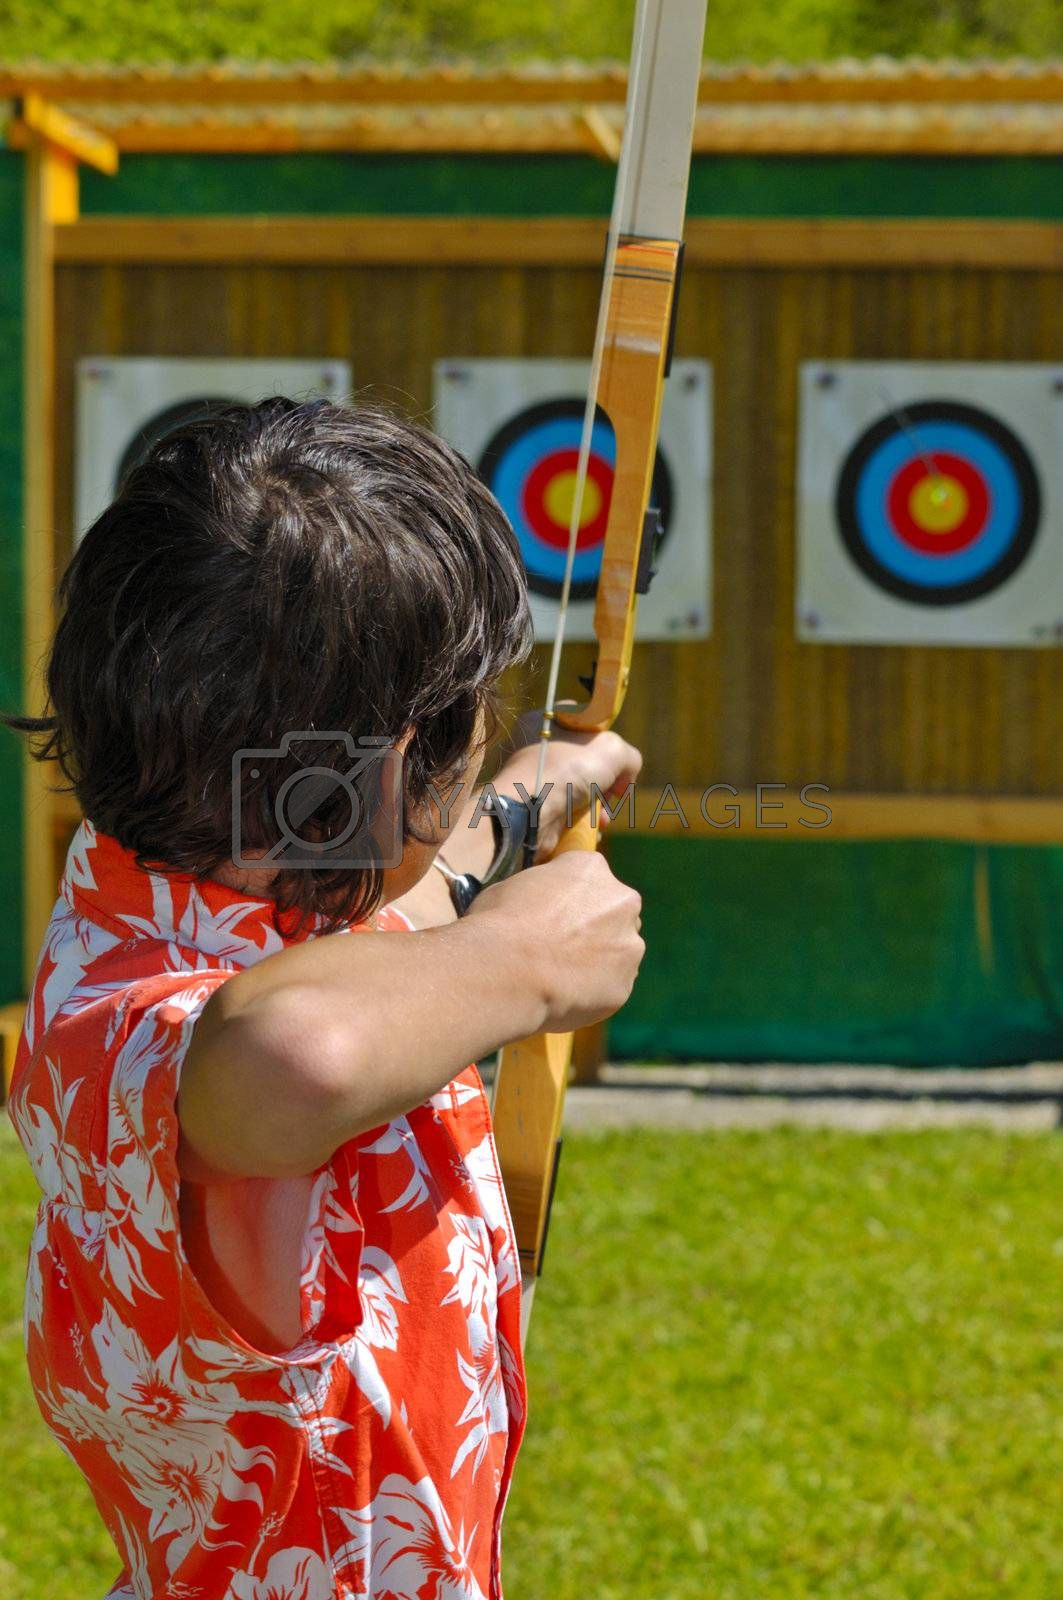 An archer aims at the bullseye of a distant target. Focus on the archer's head. The arrow can just be seen, out of focus, in the bullseye.